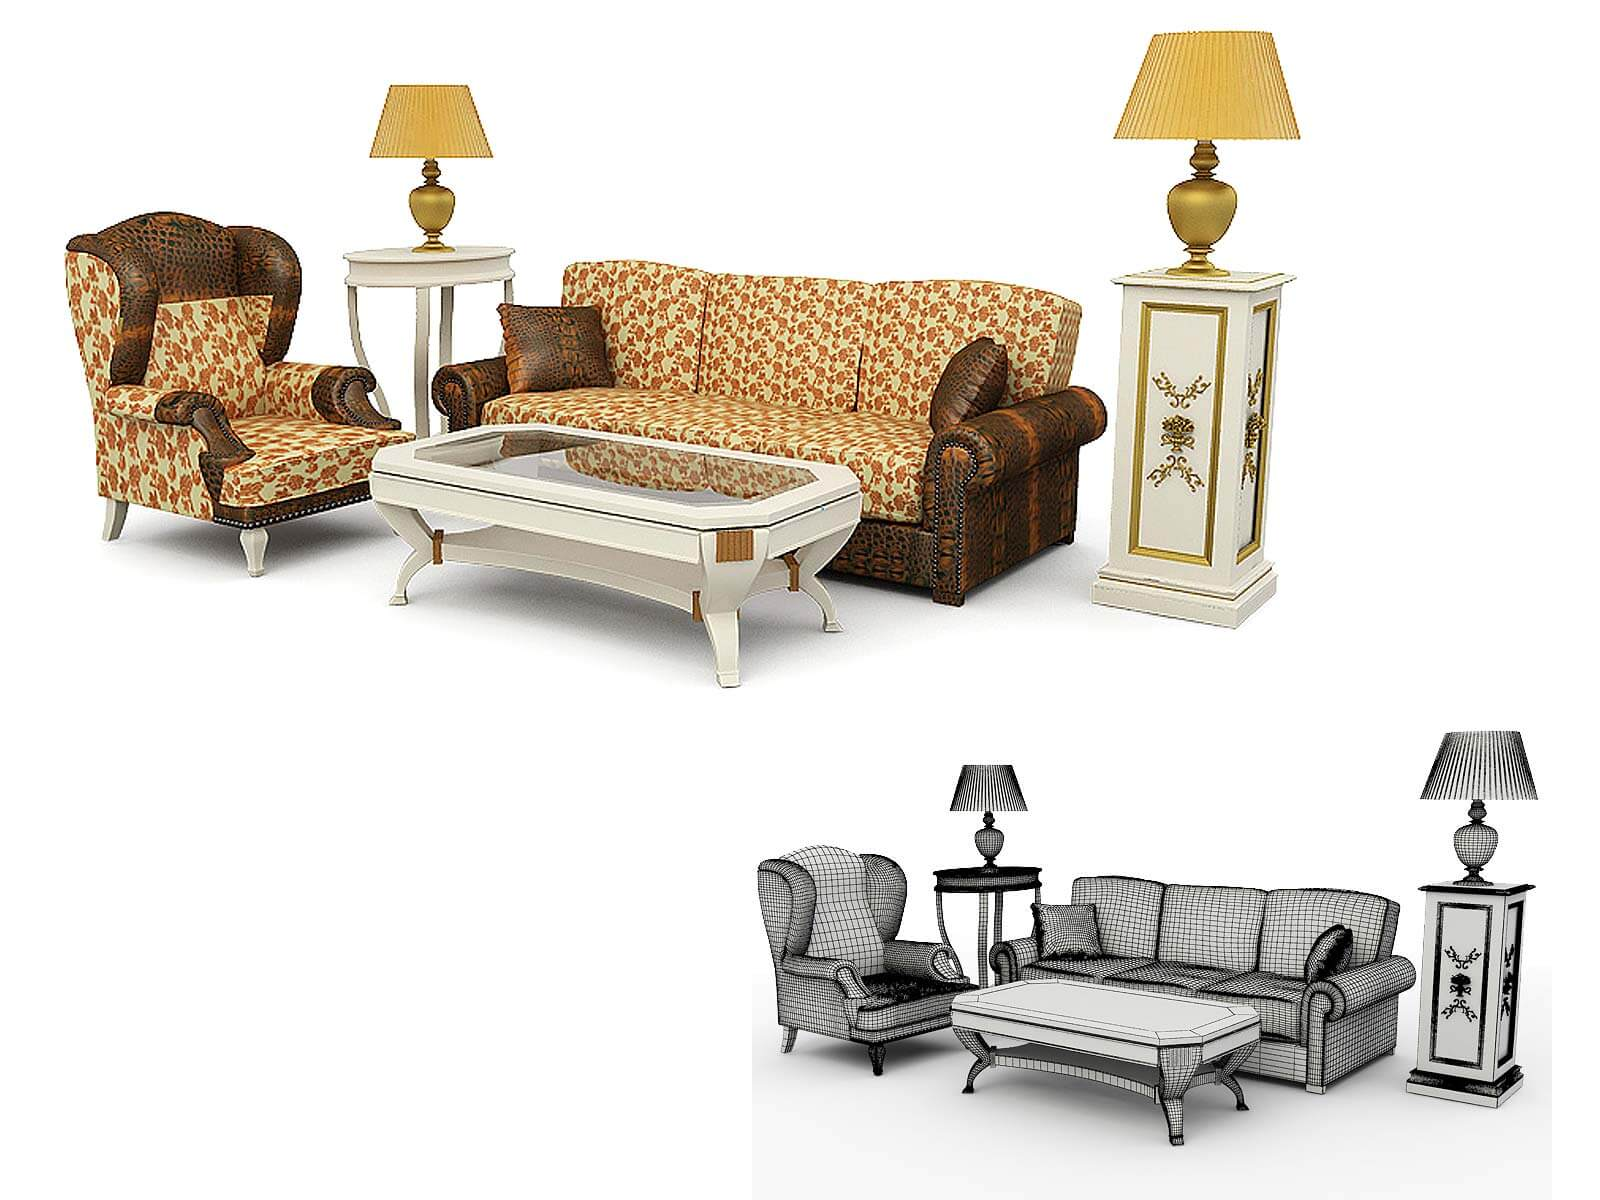 3D modeling of classic furniture, 3d visualization, London, UK.